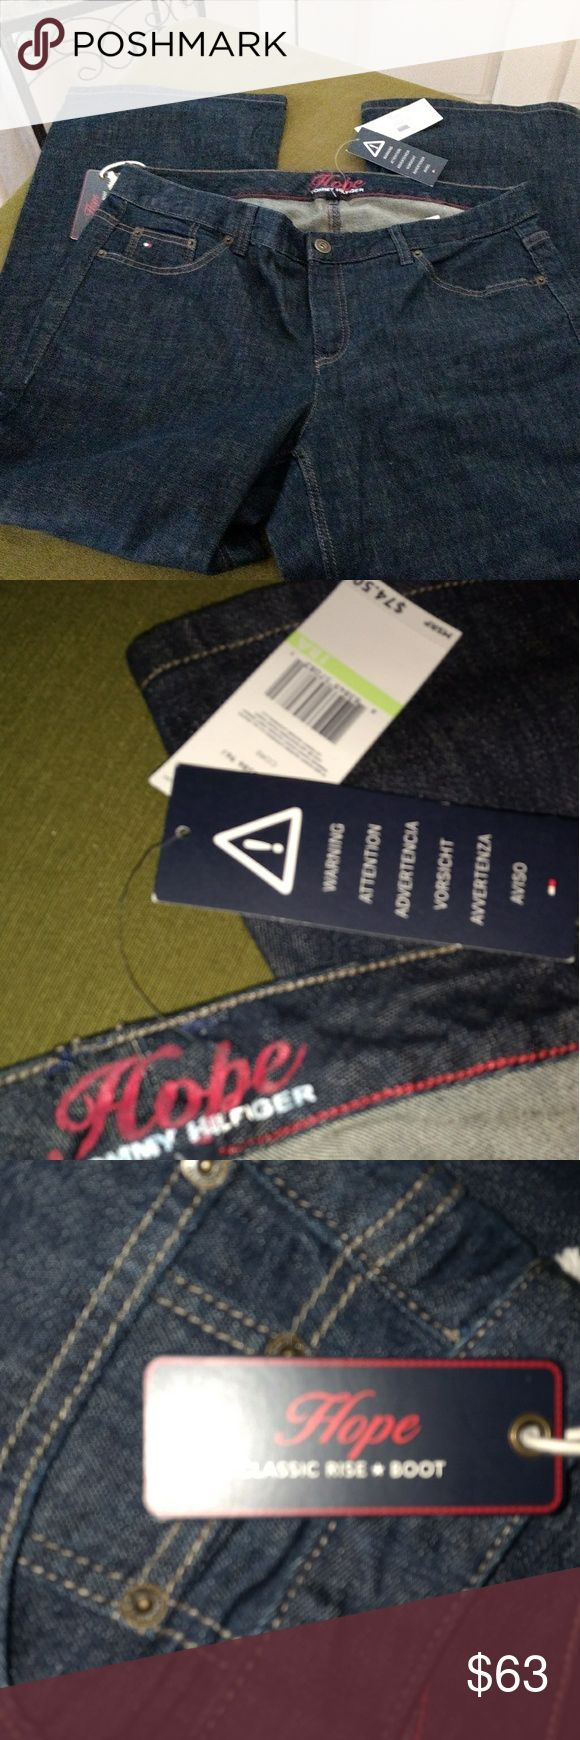 """NWT Tommy Hilfiger Hope Jeans, 18 Short You are purchasing new with tags Tommy Hilfiger Hope jeans. They are a size 18 A short jean with an inseam of 30"""".  The jeans were $74.50 at the store. Tommy Hilfiger Jeans Boot Cut"""